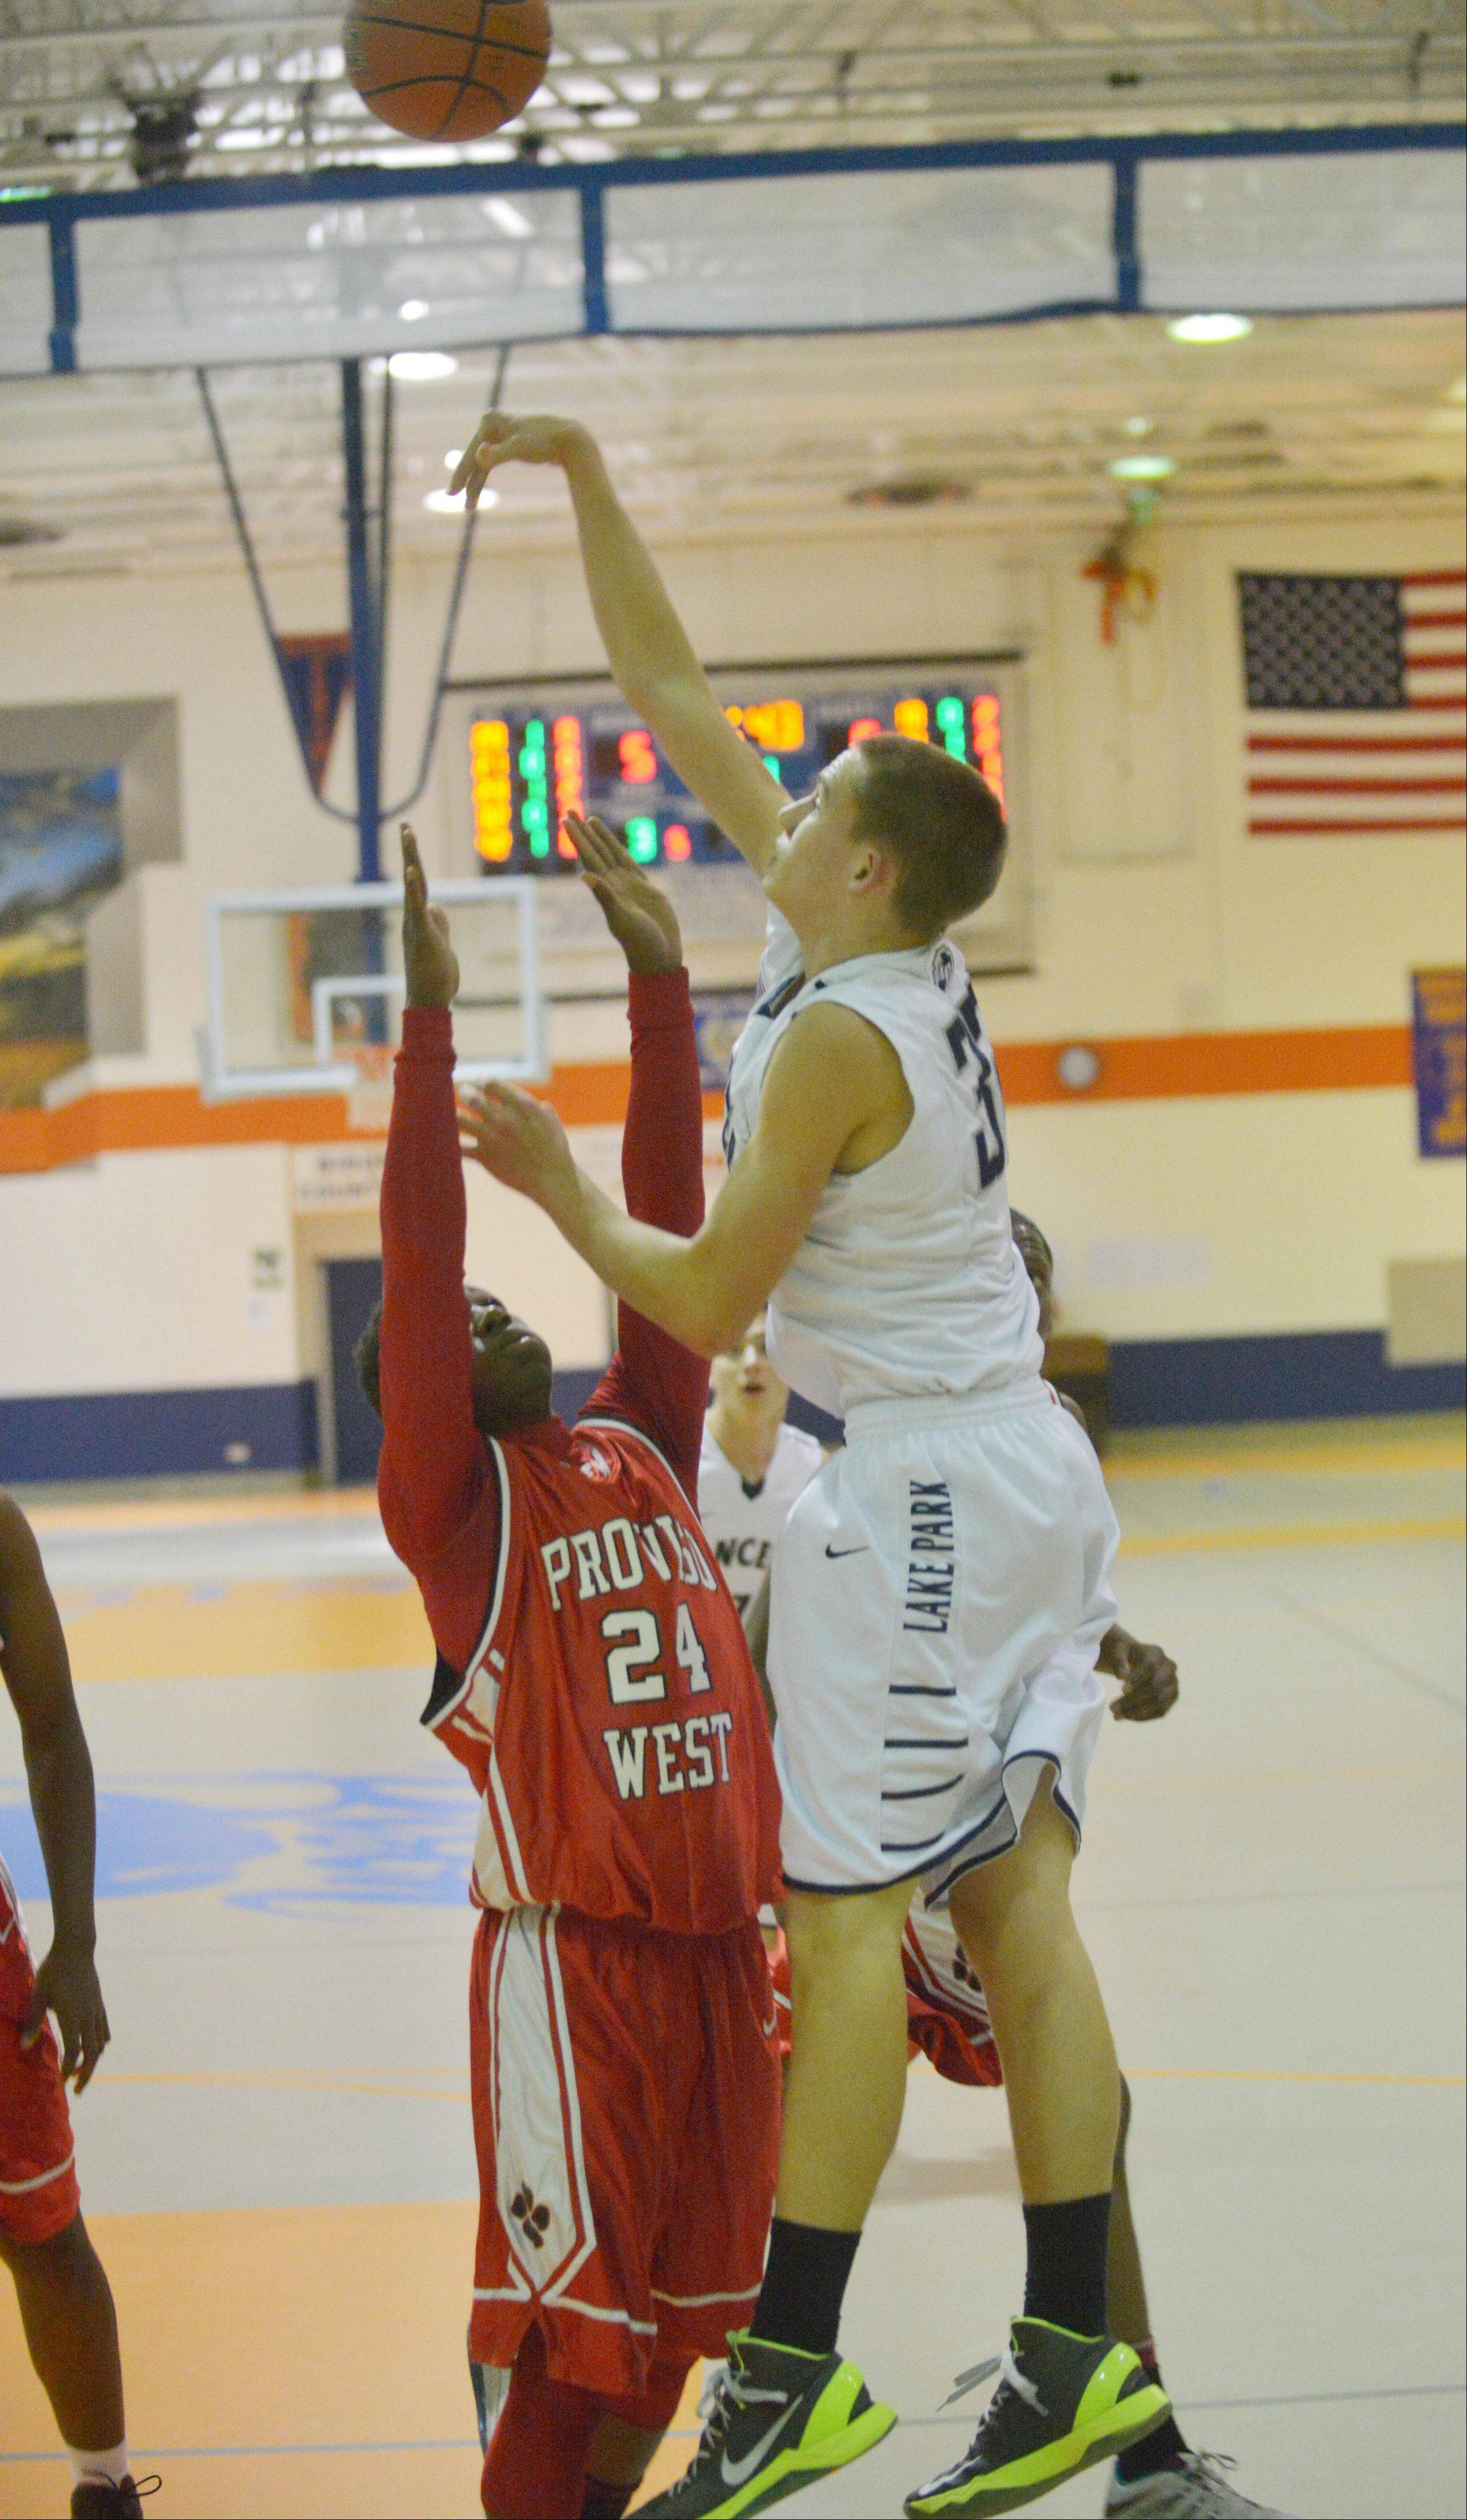 Connor Vance of Lake Park puts up a shot during the Lake Park vs. Proviso West boys basketball game Wednesday.